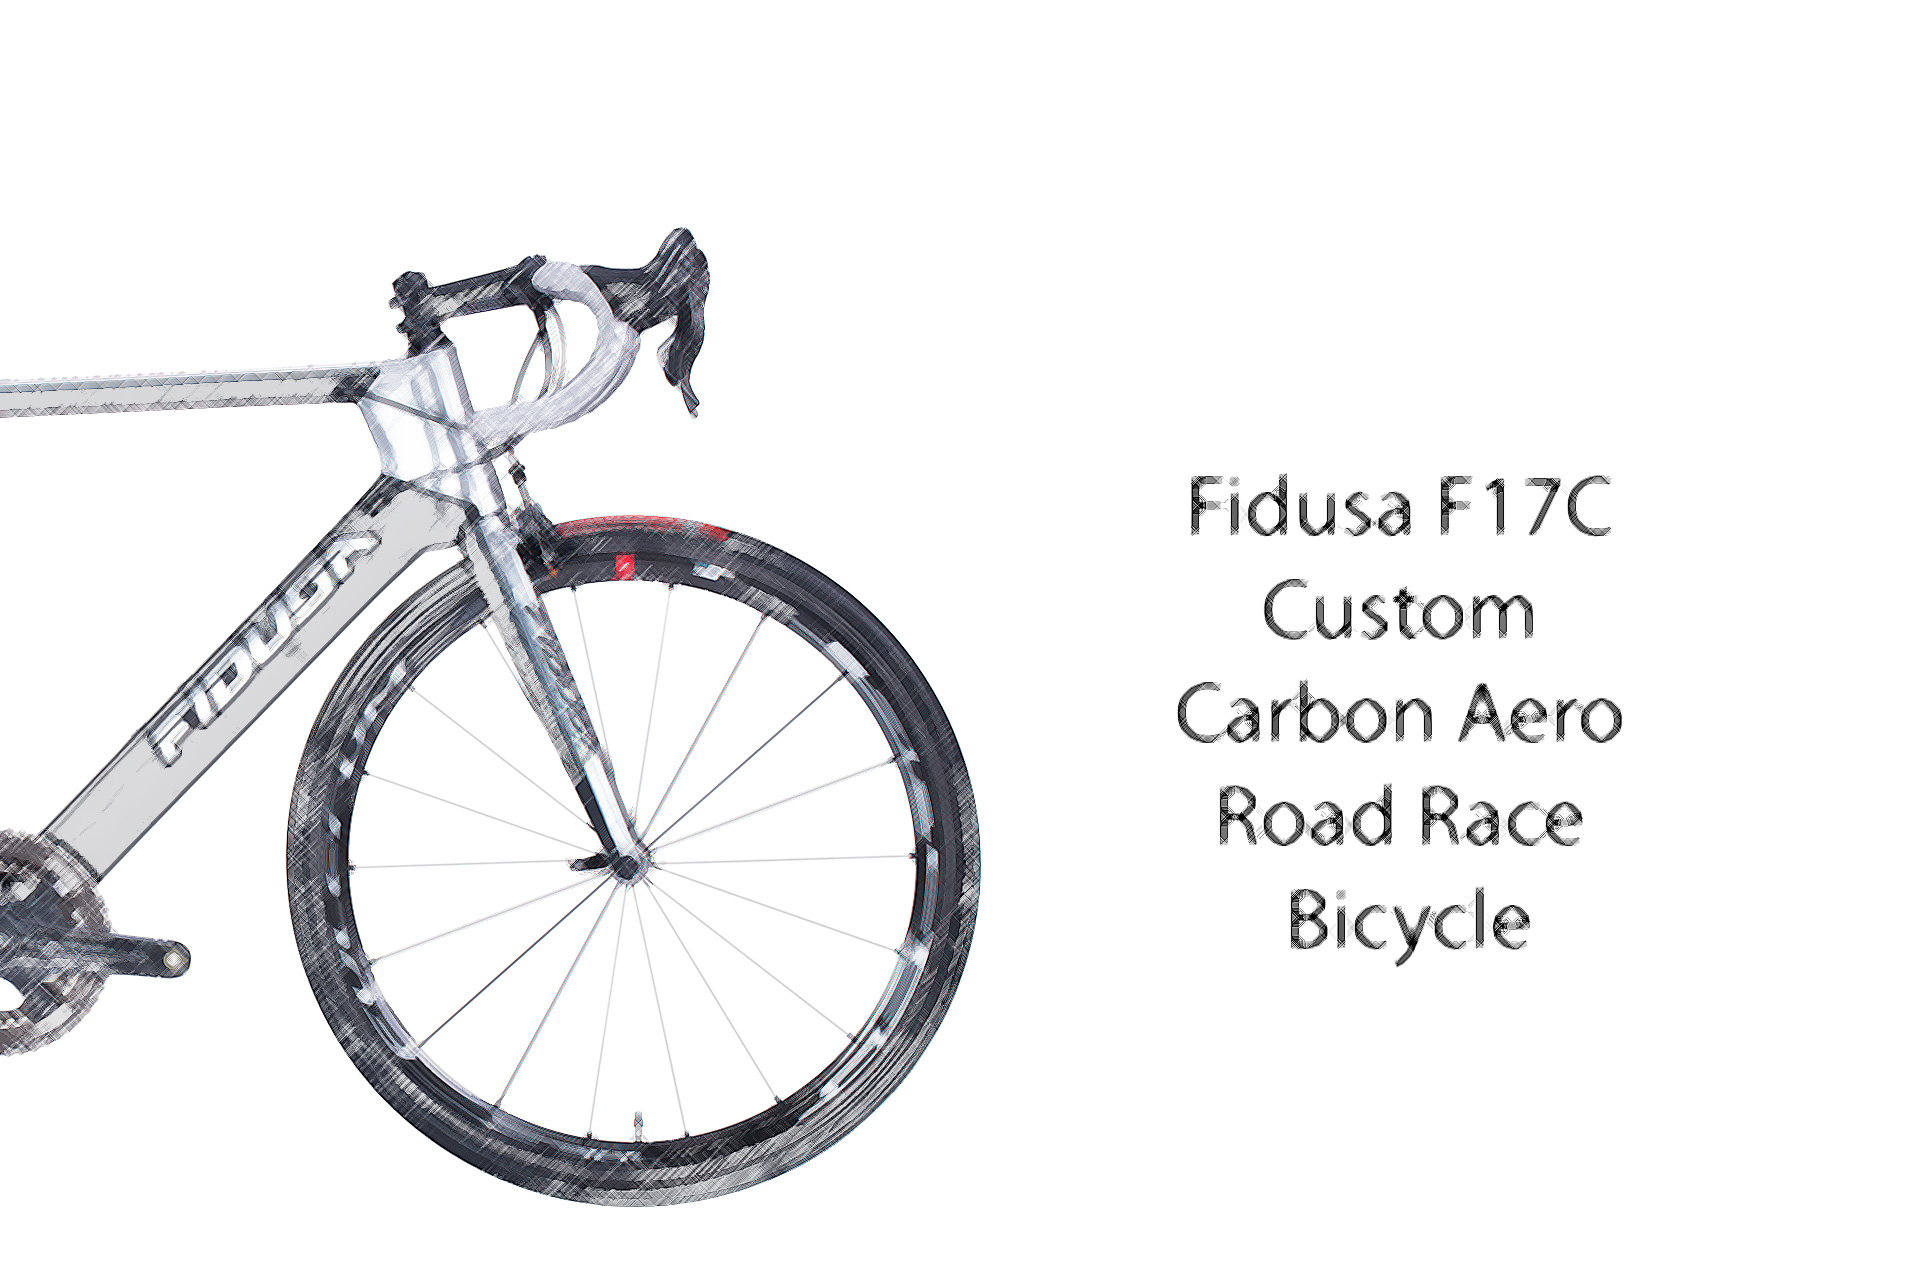 handmade-carbon-road-bicycle20 Fidusa F17C Custom Carbon Aero Road Race Bicycle